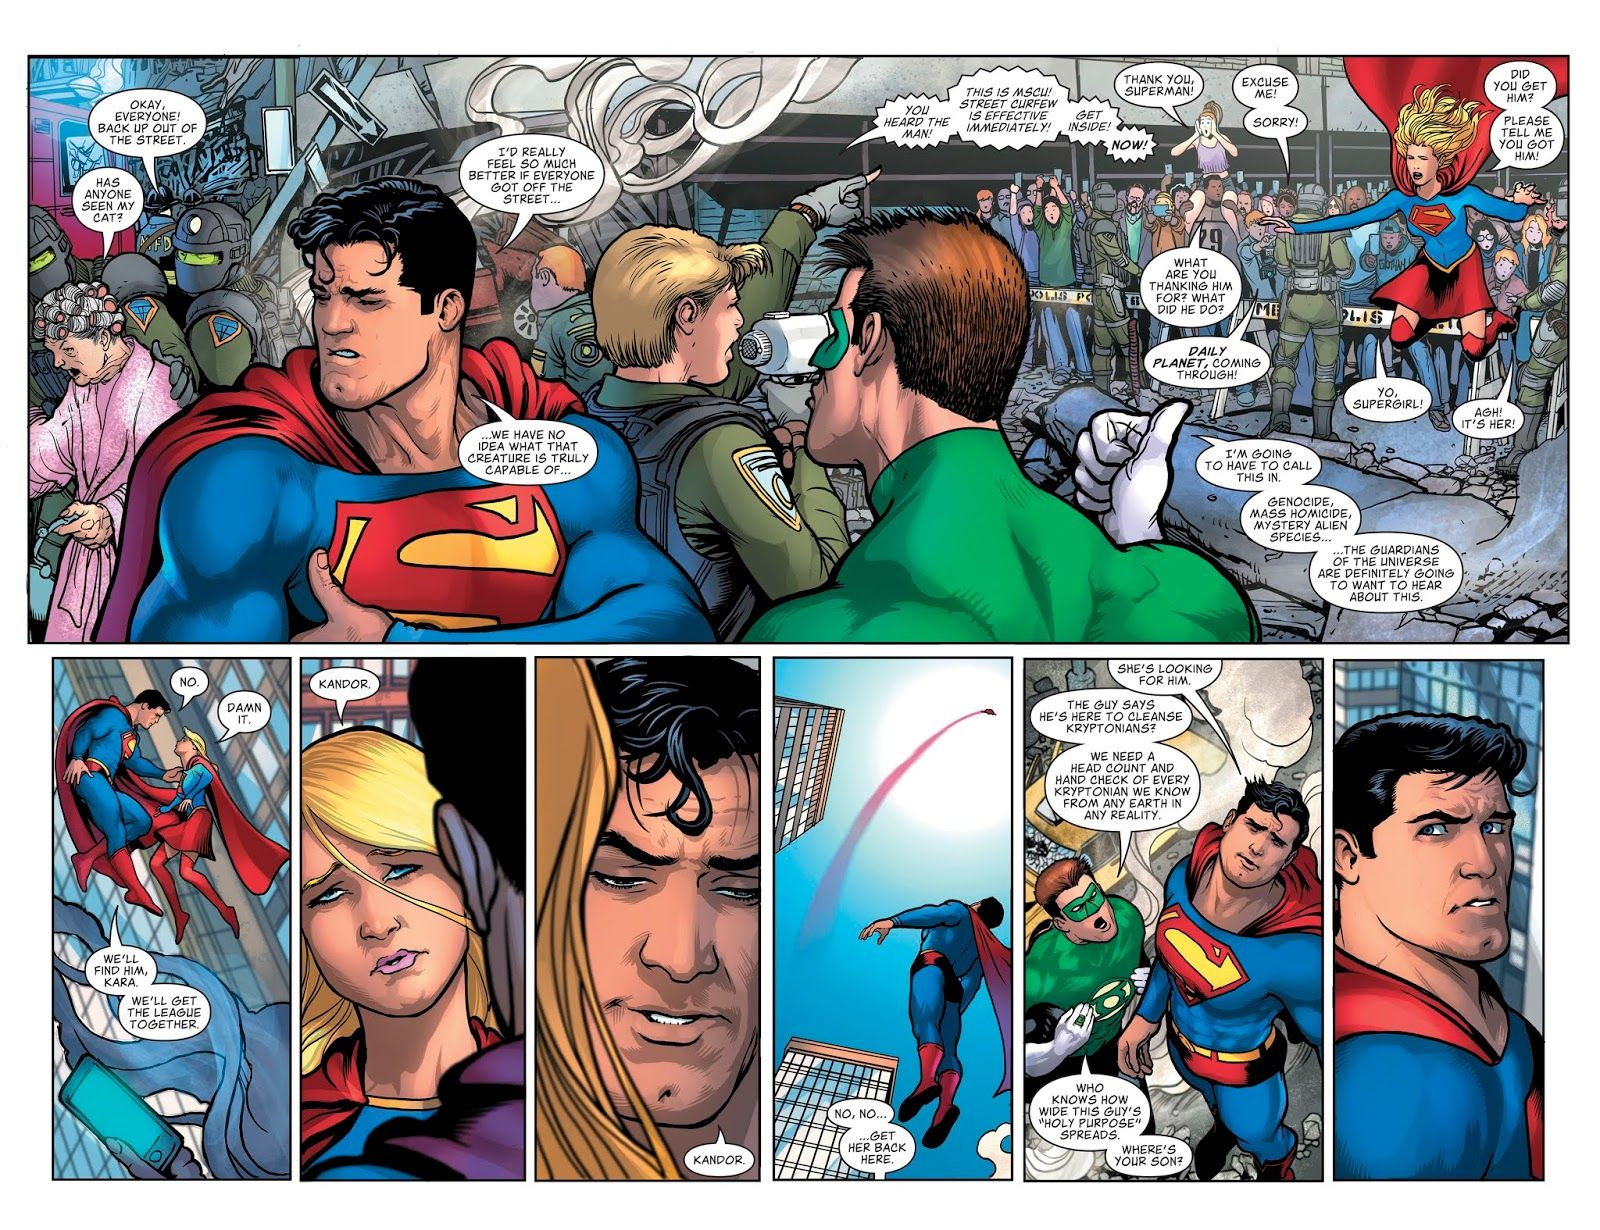 The Man Of Steel 2018 Issue 4 Read The Man Of Steel 2018 Issue 4 Comic Online In High Quality Man Of Steel Art